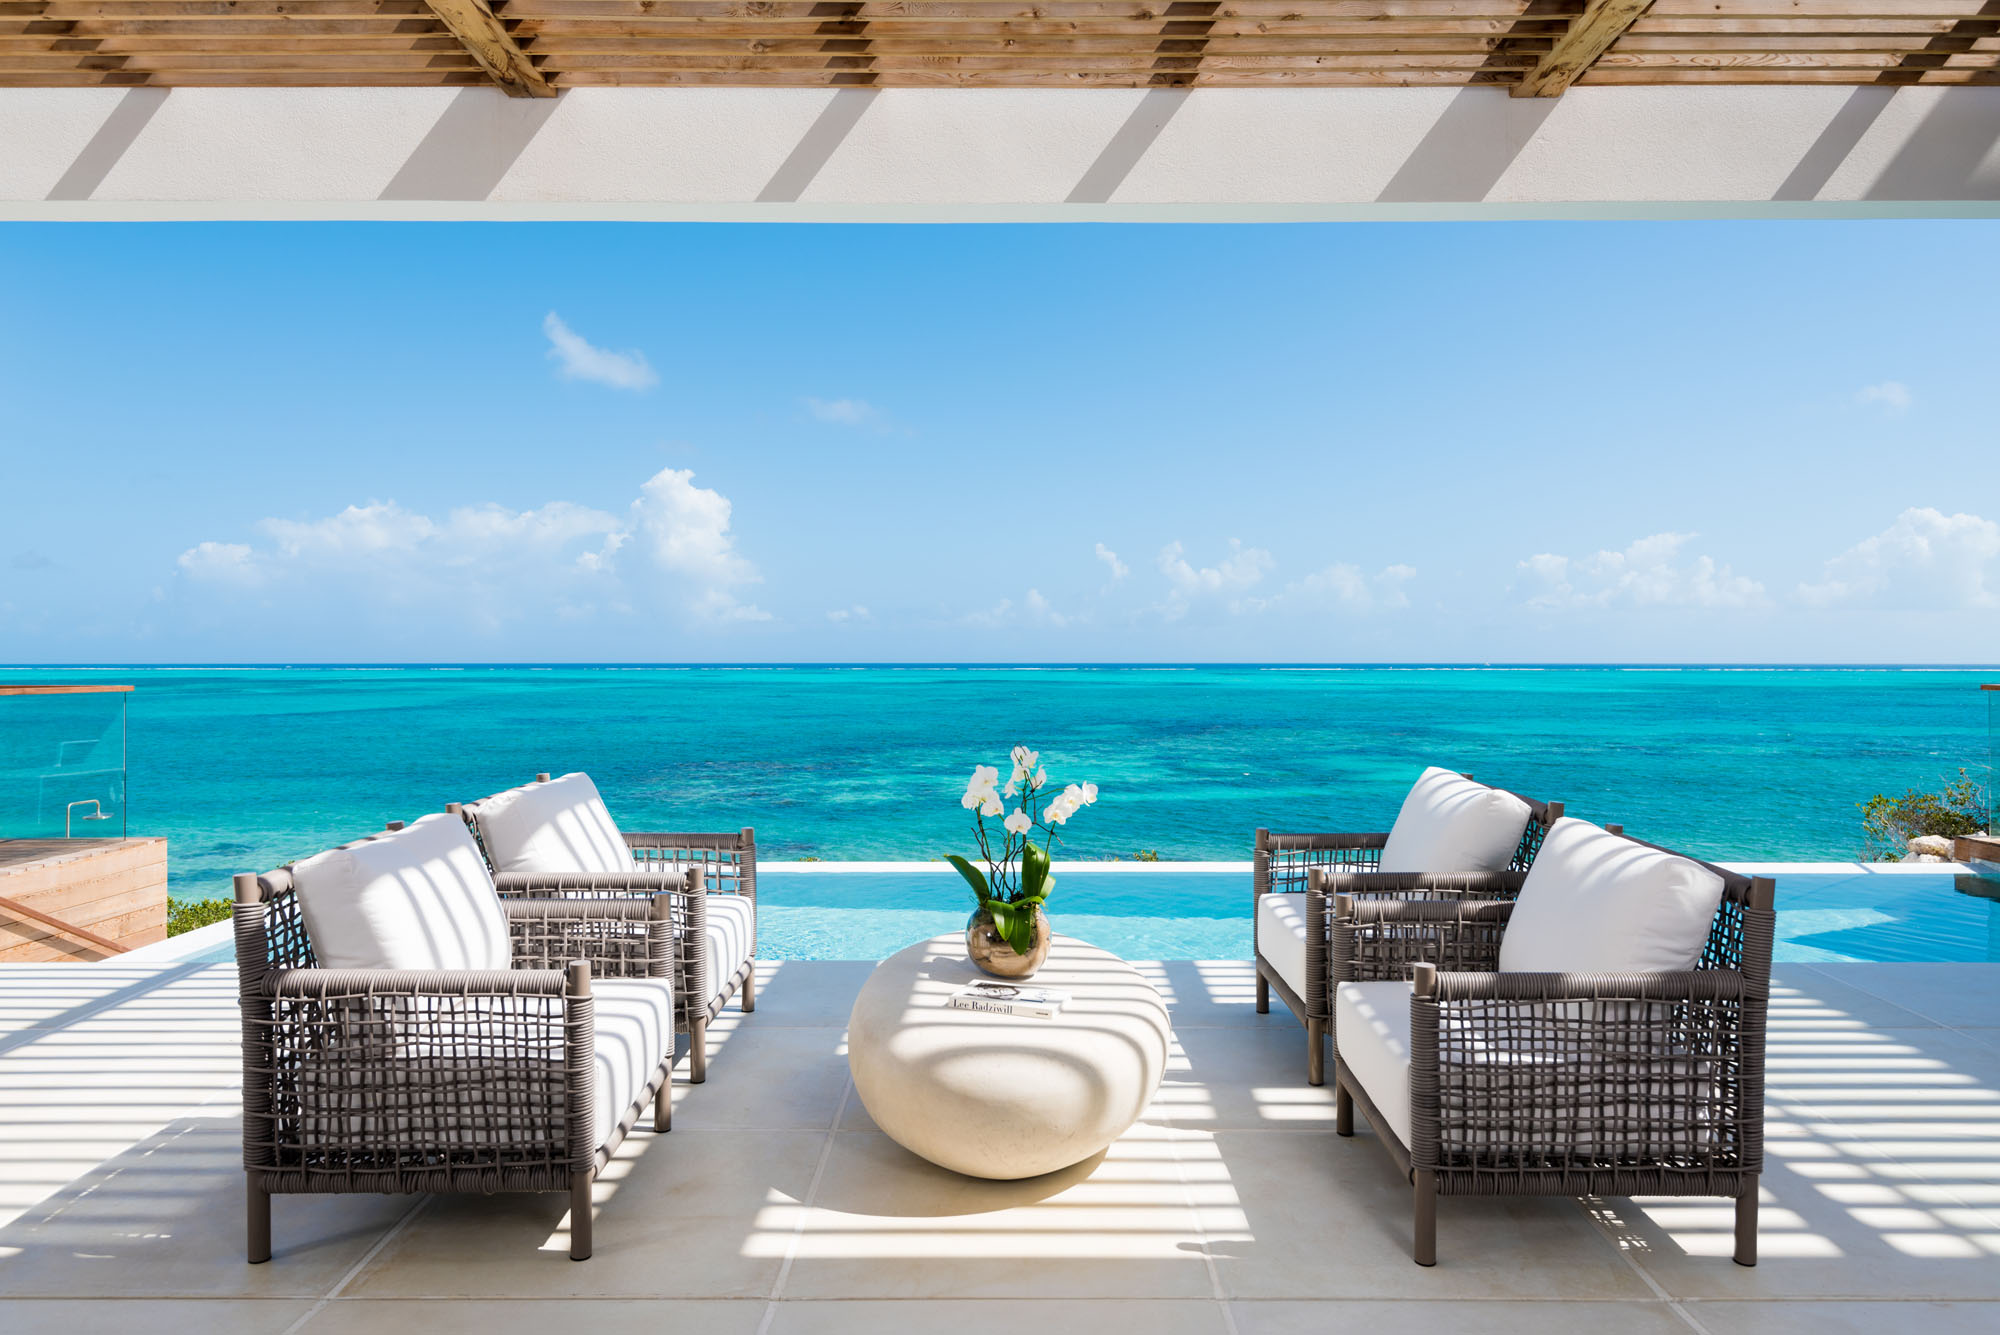 These Turks and Caicos luxury beach villa rentals are available with 4 or 5 bedroom configurations.